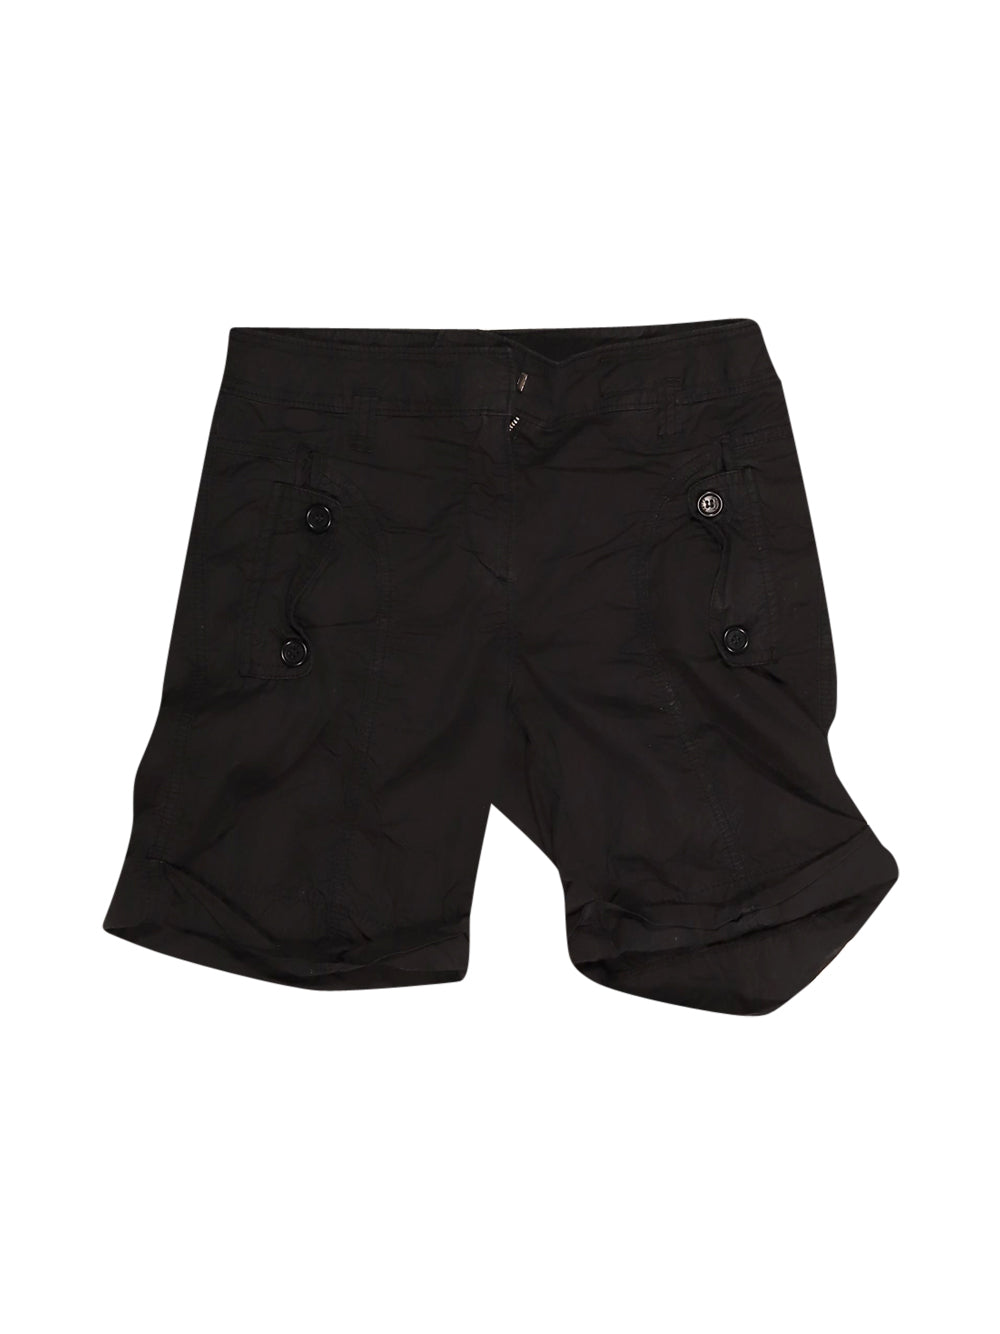 Front photo of Preloved Henry Cotton's Black Woman's shorts - size 6/XS